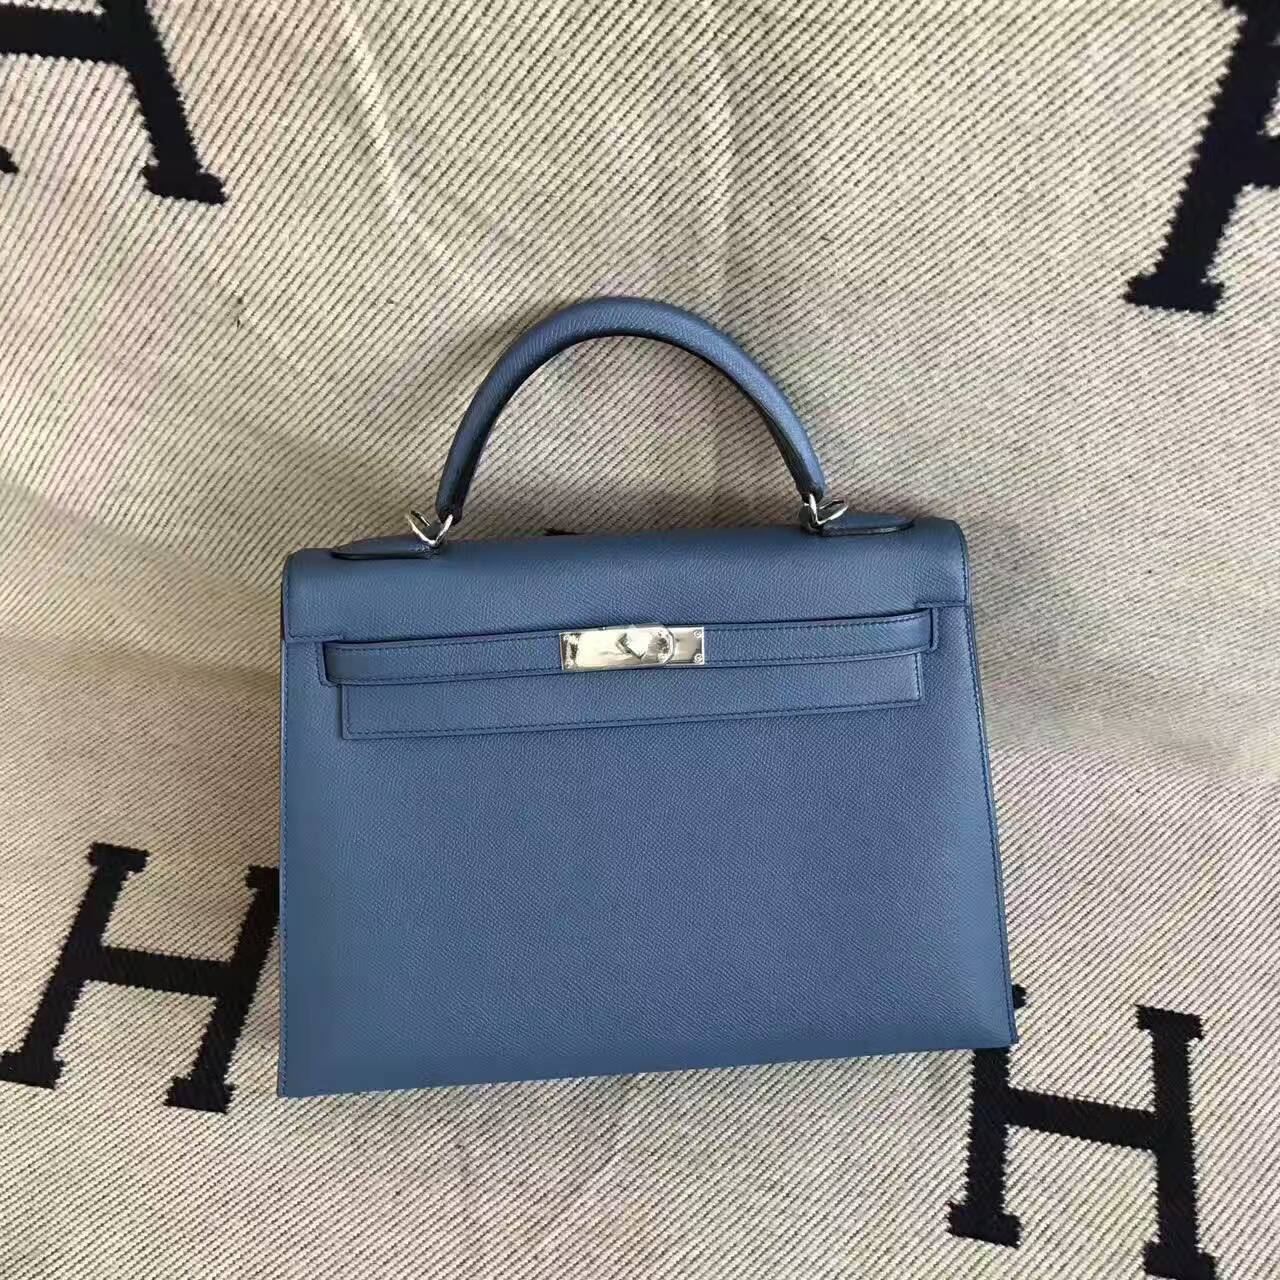 Hand Stitching Hermes Kelly Bag 32CM in 2R Agate Blue Epsom Leather